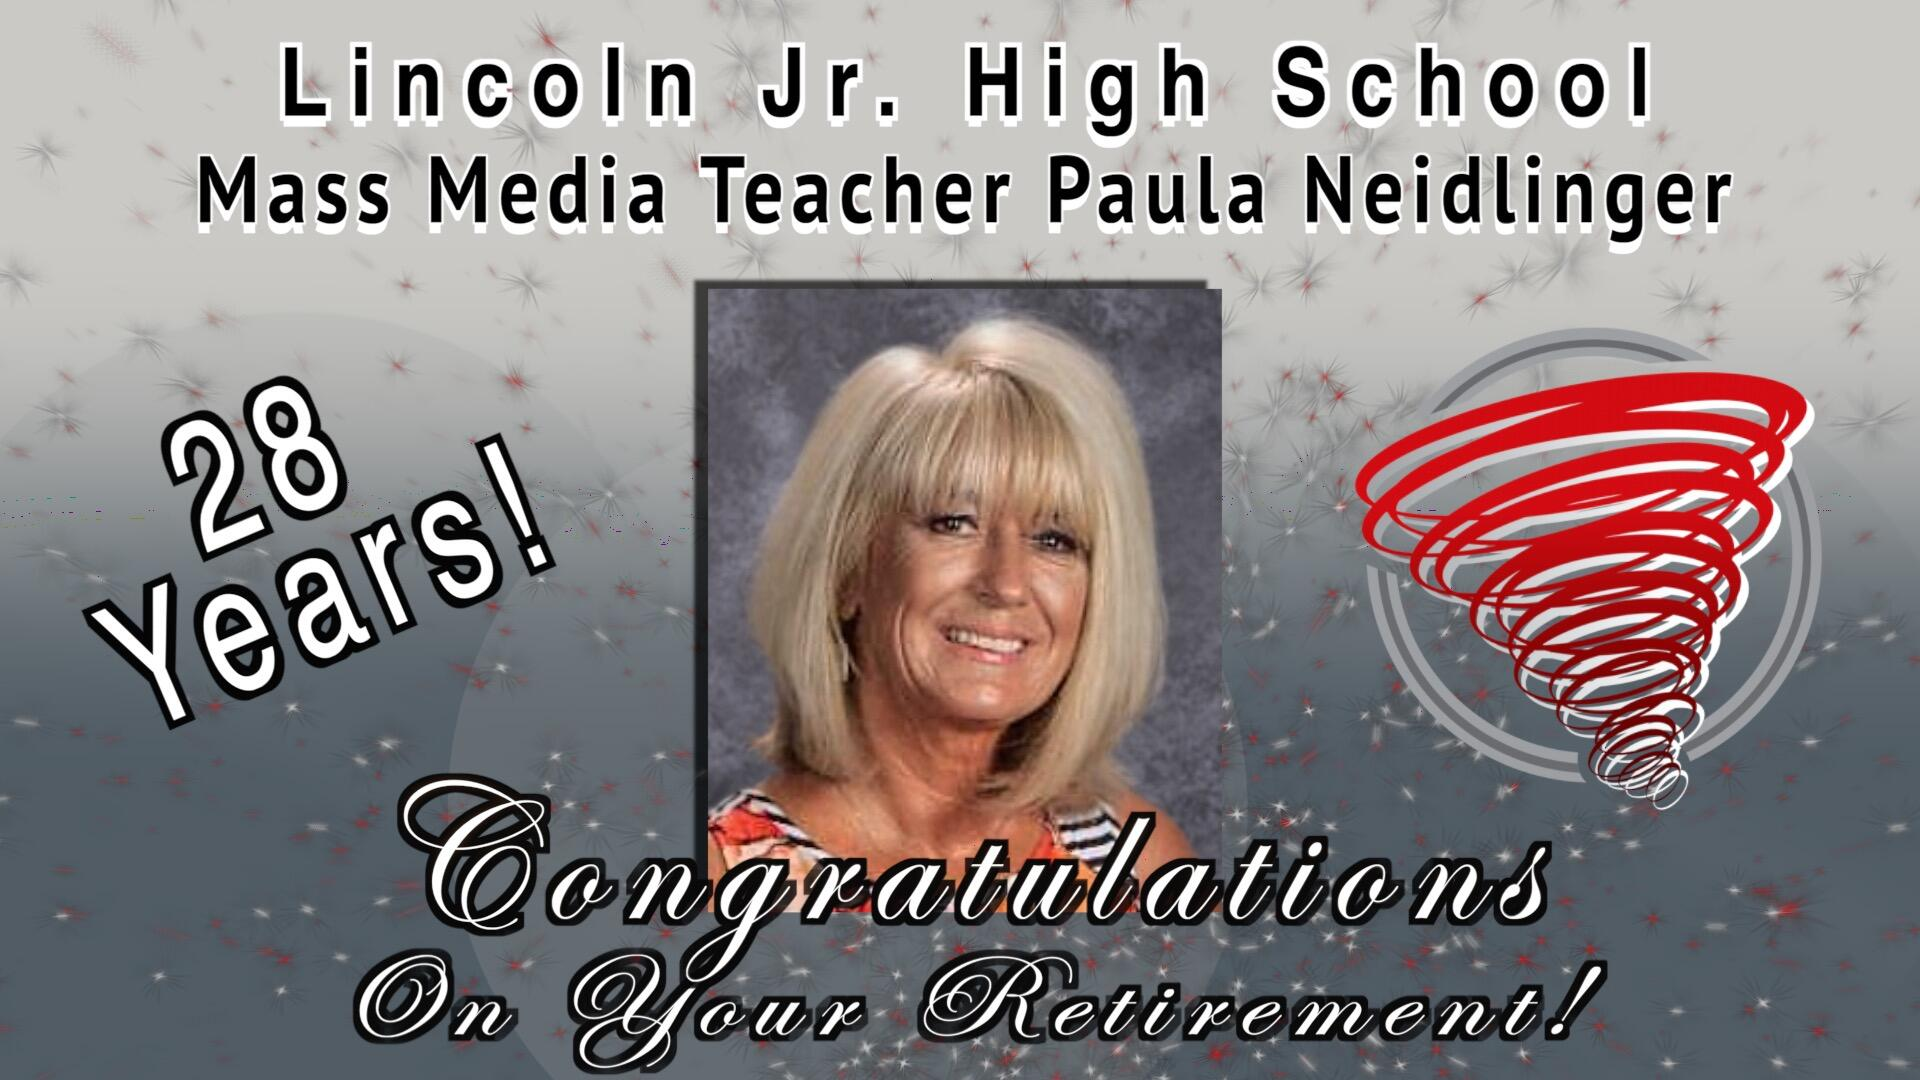 Lincoln Junior High School Mass Media Teacher Paula Neidlinger with photo 28 Years! Congratulations On Your Retirement!  and Red Storm Logo